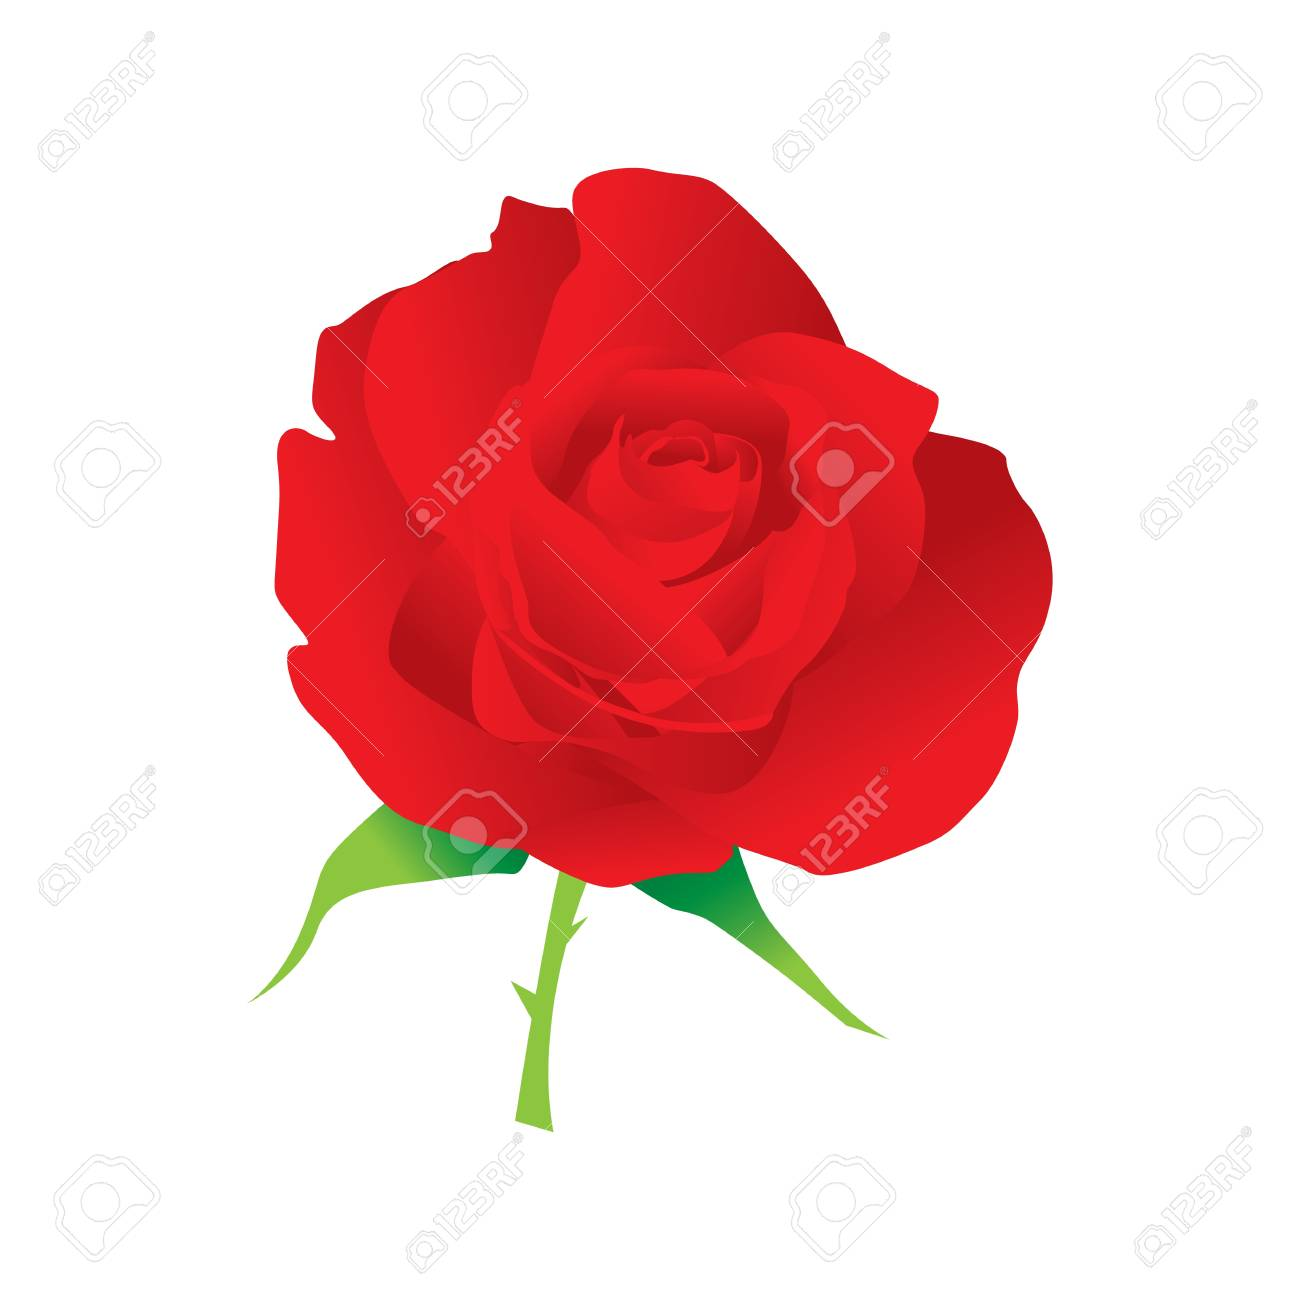 rose vector. Stock Vector - 17521974